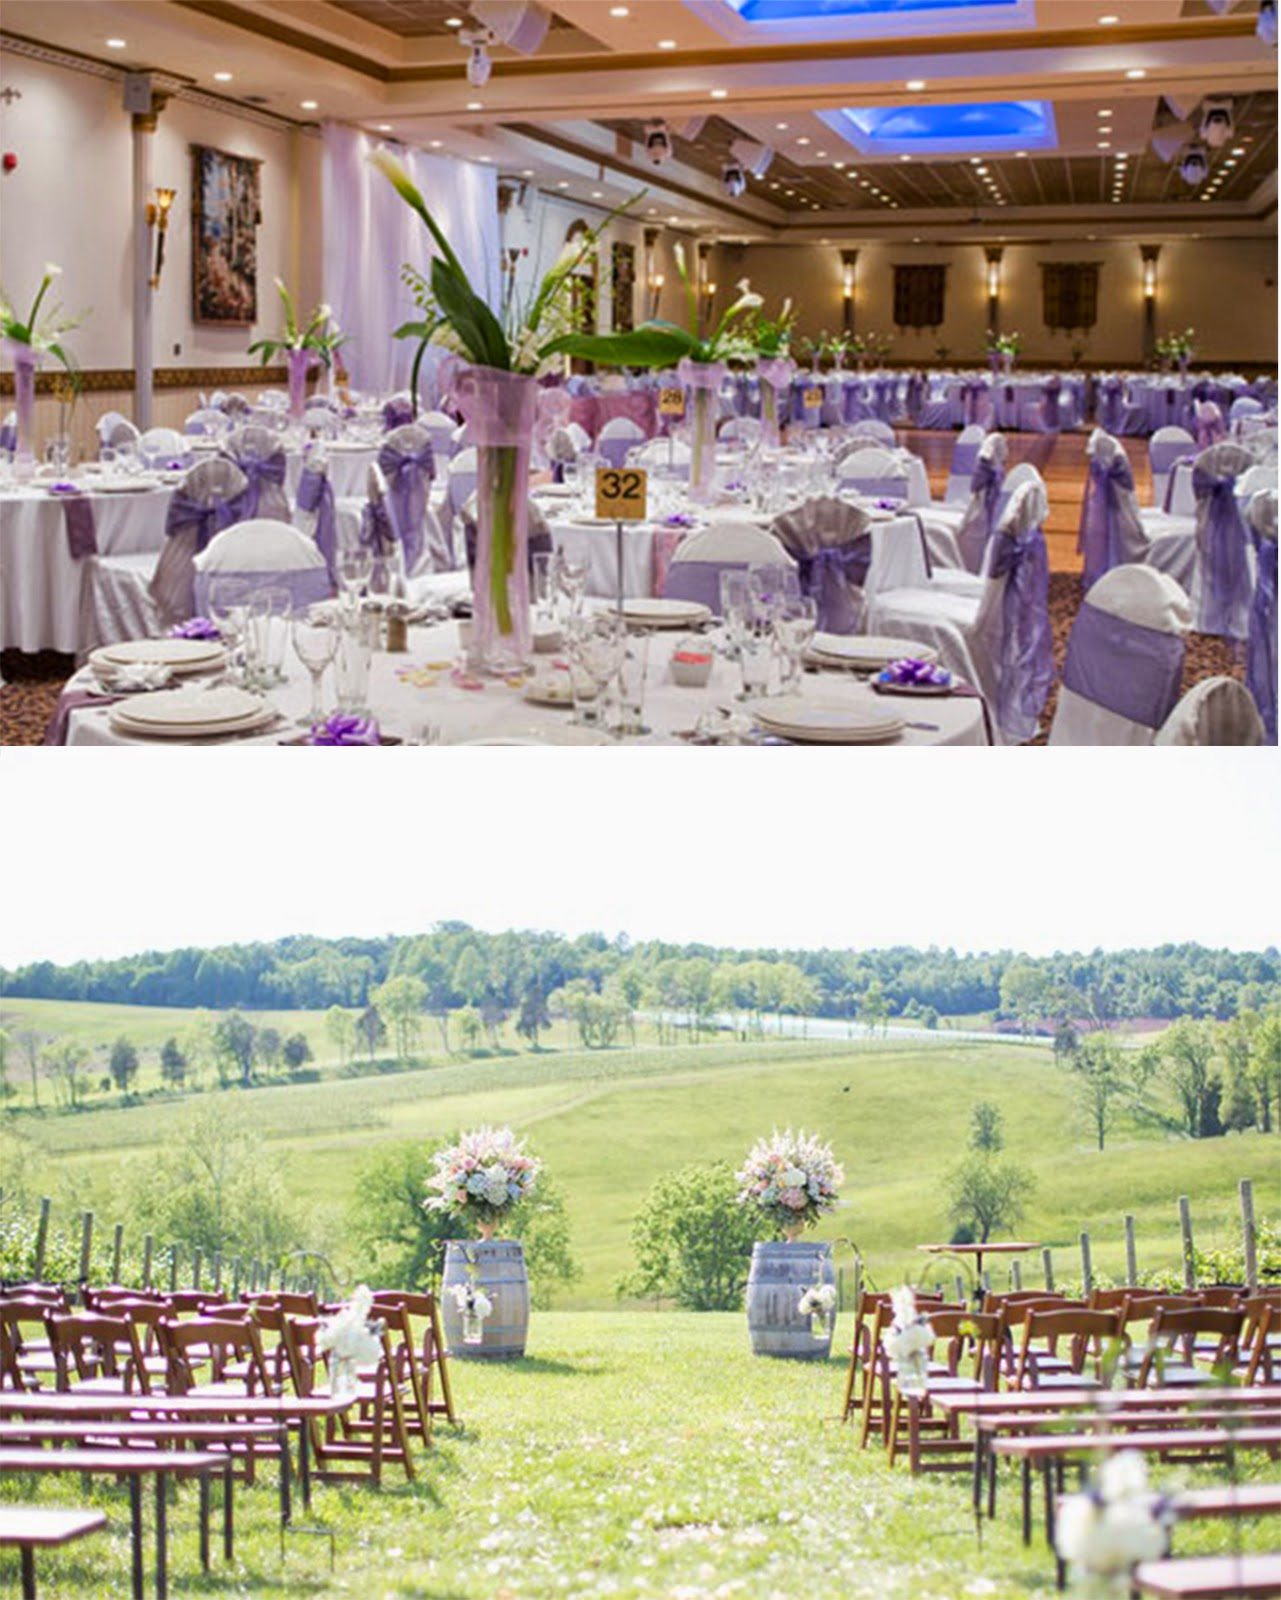 Lavender theme wedding image collections wedding decoration ideas prom dress lavender theme summer wedding ideas firstlychoose a good place to hold your wedding partyit junglespirit Image collections